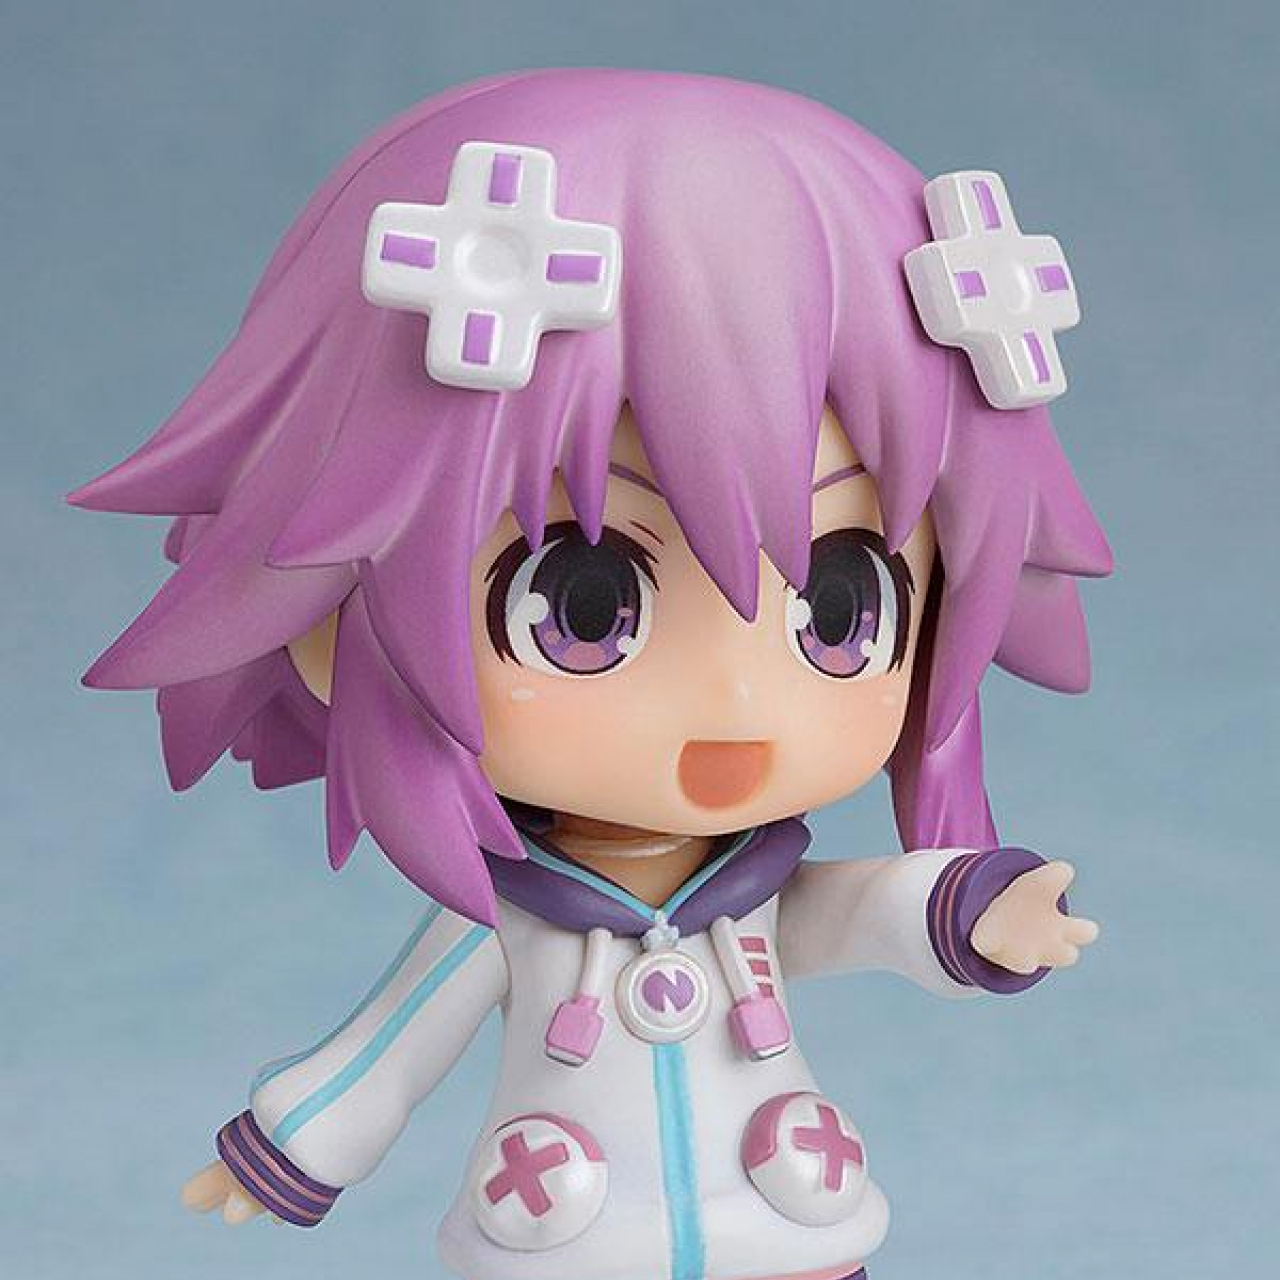 Hyperdimension Neptunia Nendoroid Action Figure Neptune 10th Anniversary Ver. 10 cm